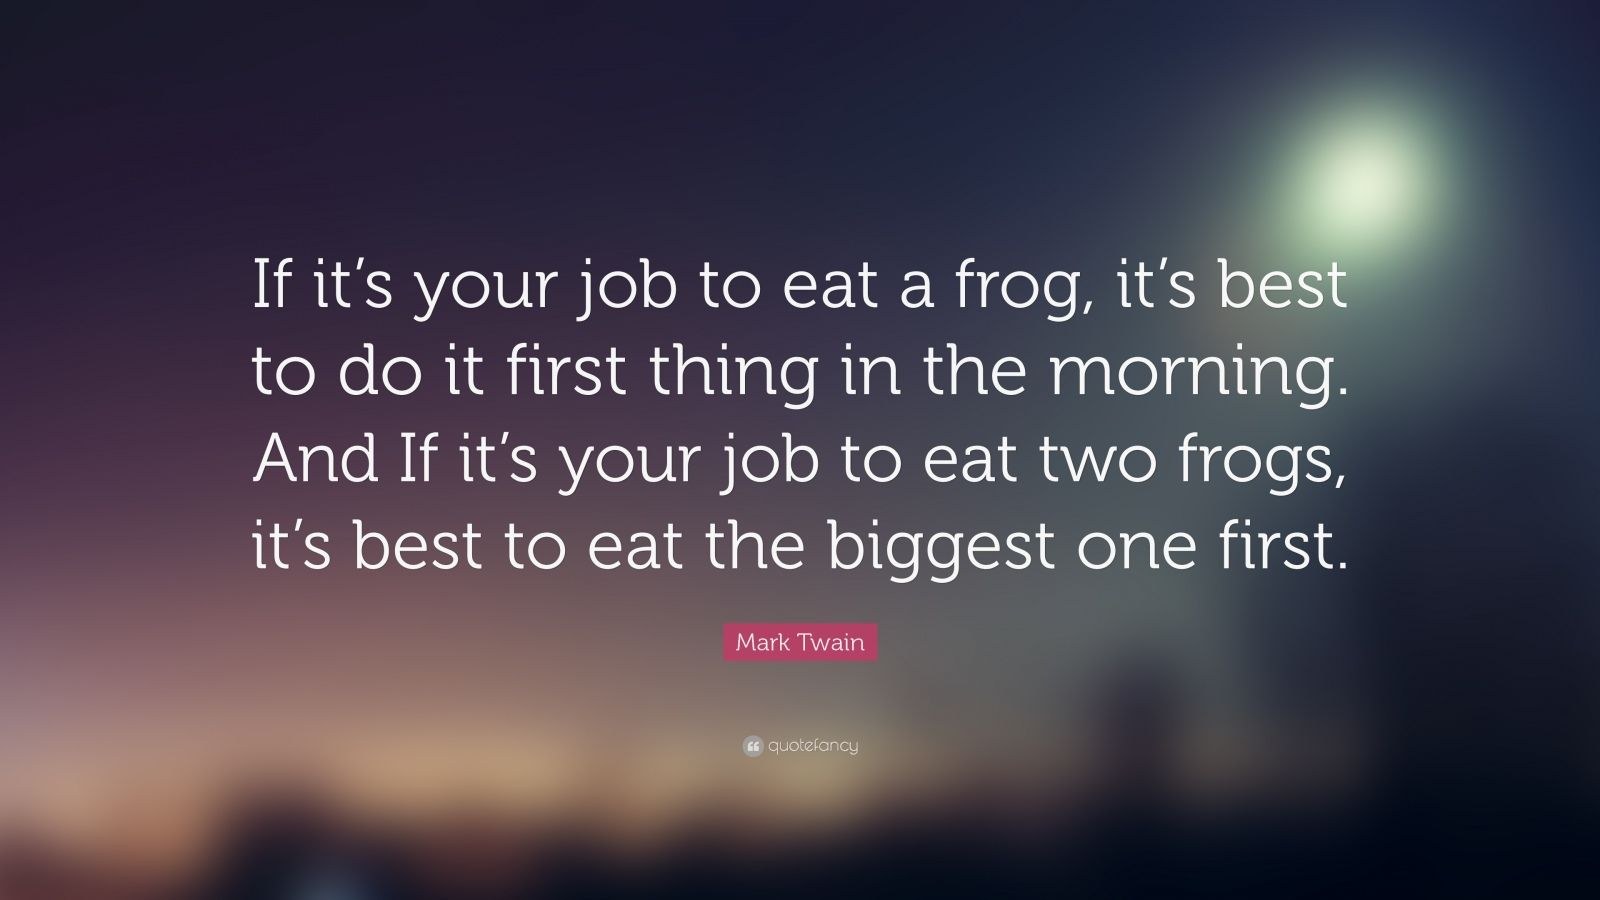 Mother Love Wallpapers With Quotes Mark Twain Quote If It S Your Job To Eat A Frog It S